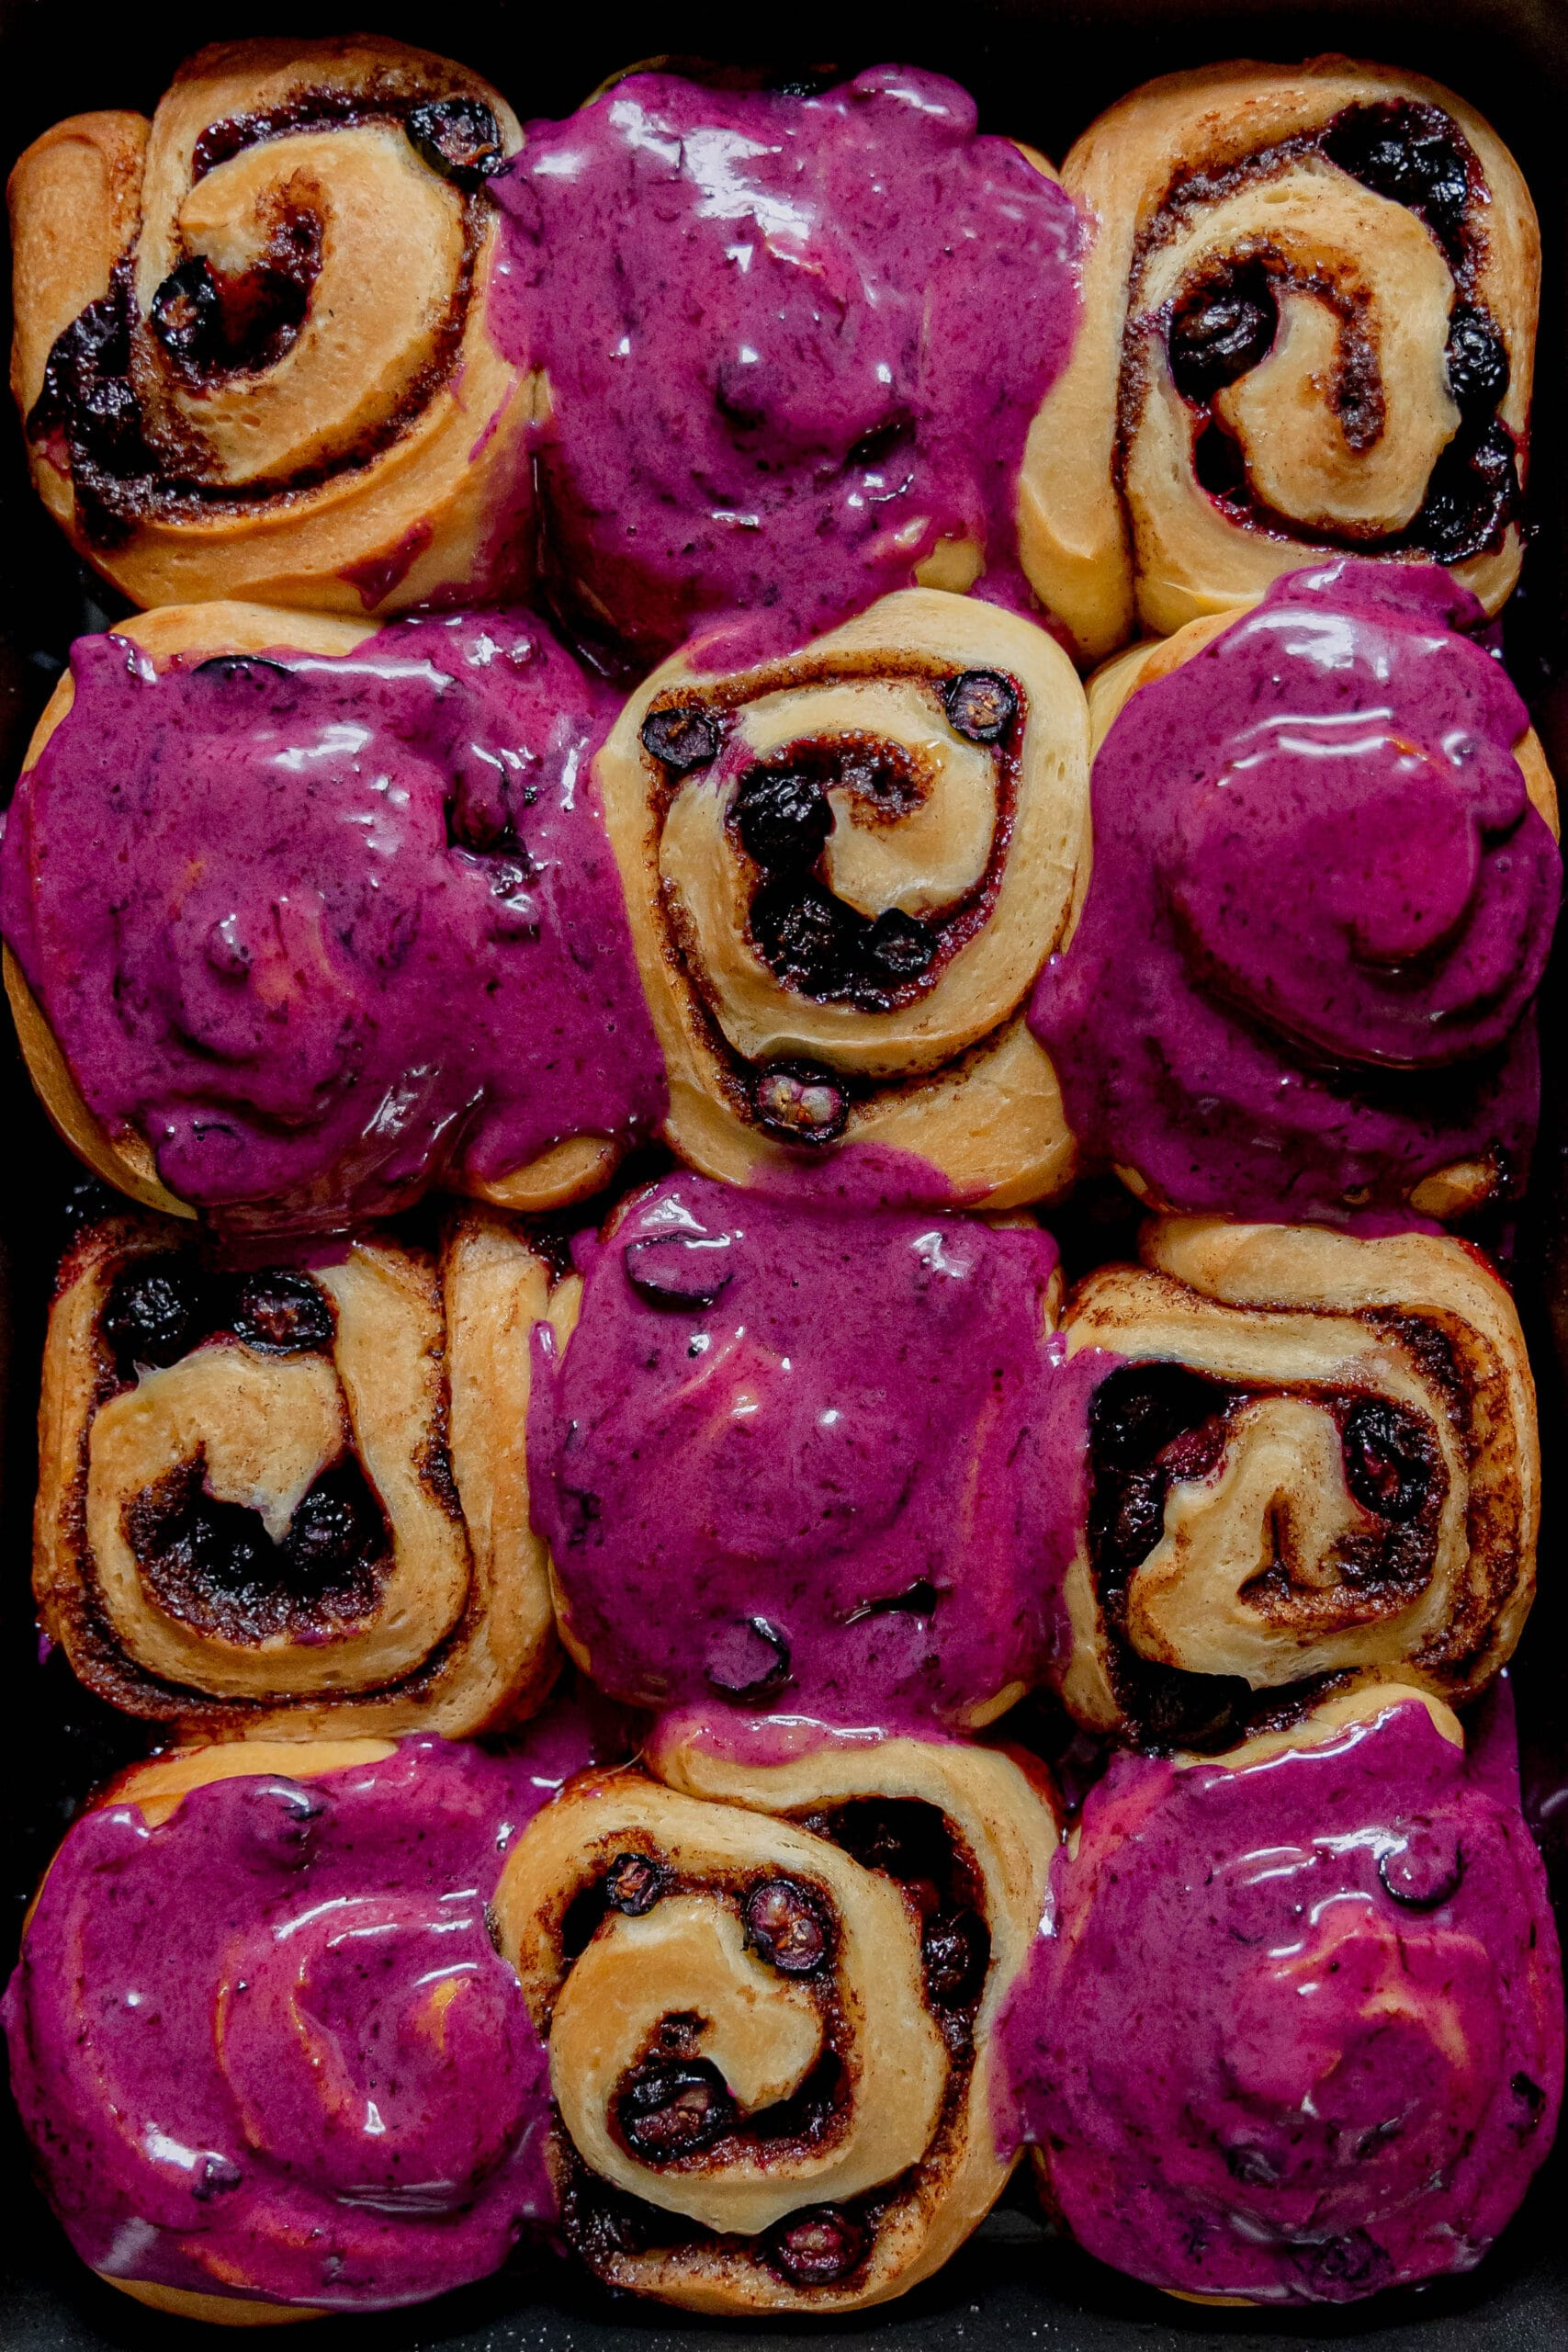 Blueberry cinnamon rolls, half frosted with rich purple blueberry icing and half bare